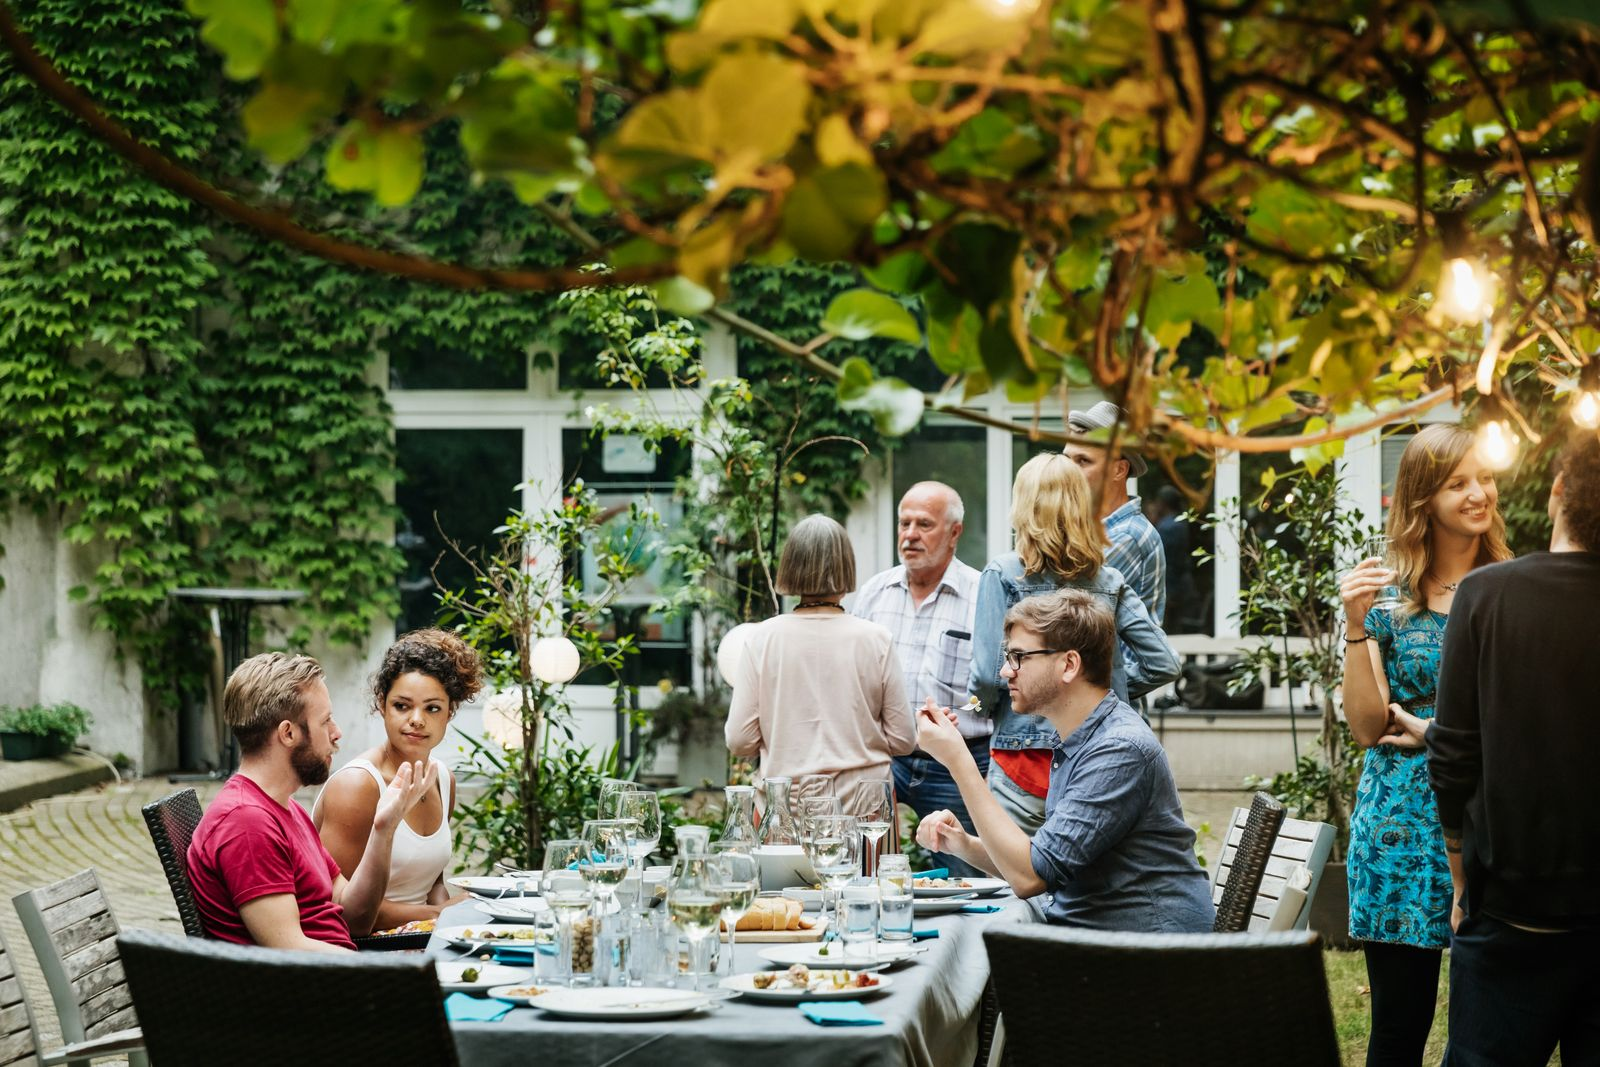 Family Eating together In Courtyard